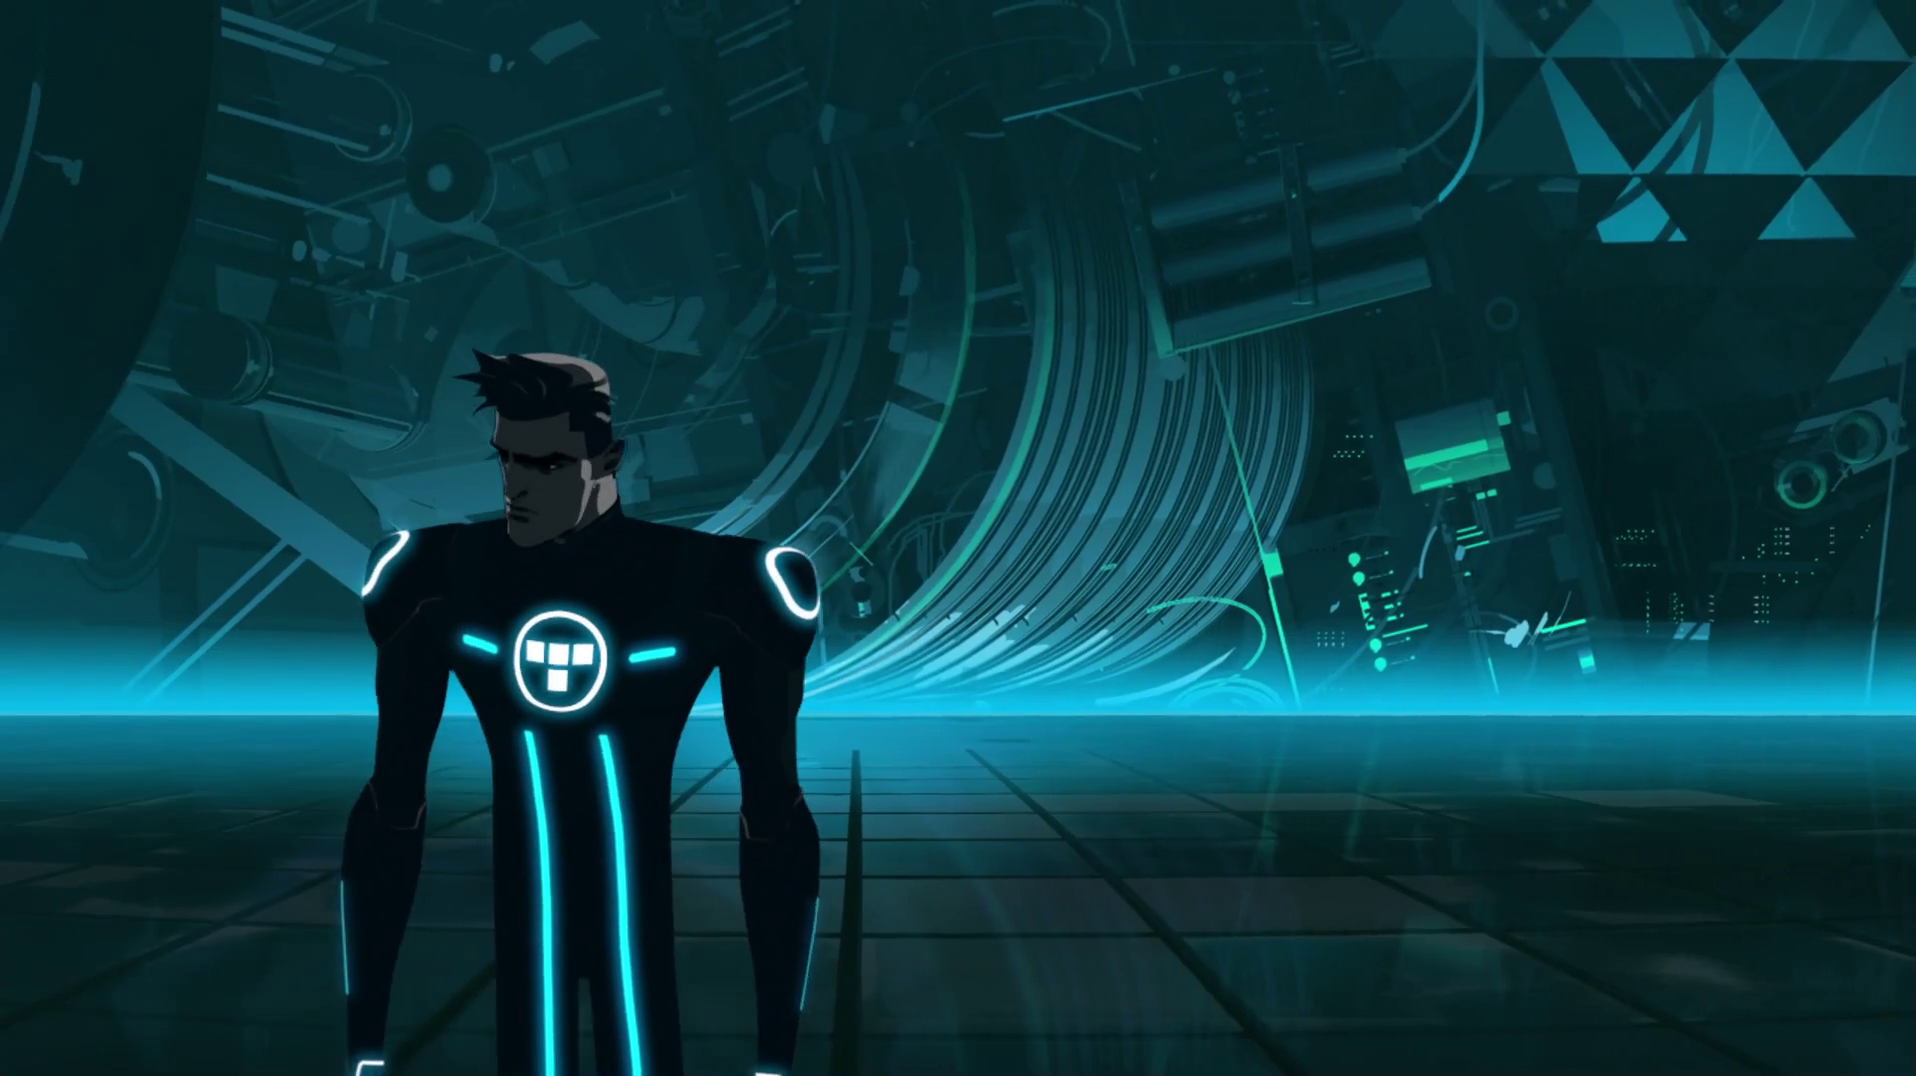 Tron_2019-08-05-22h42m53s018.png